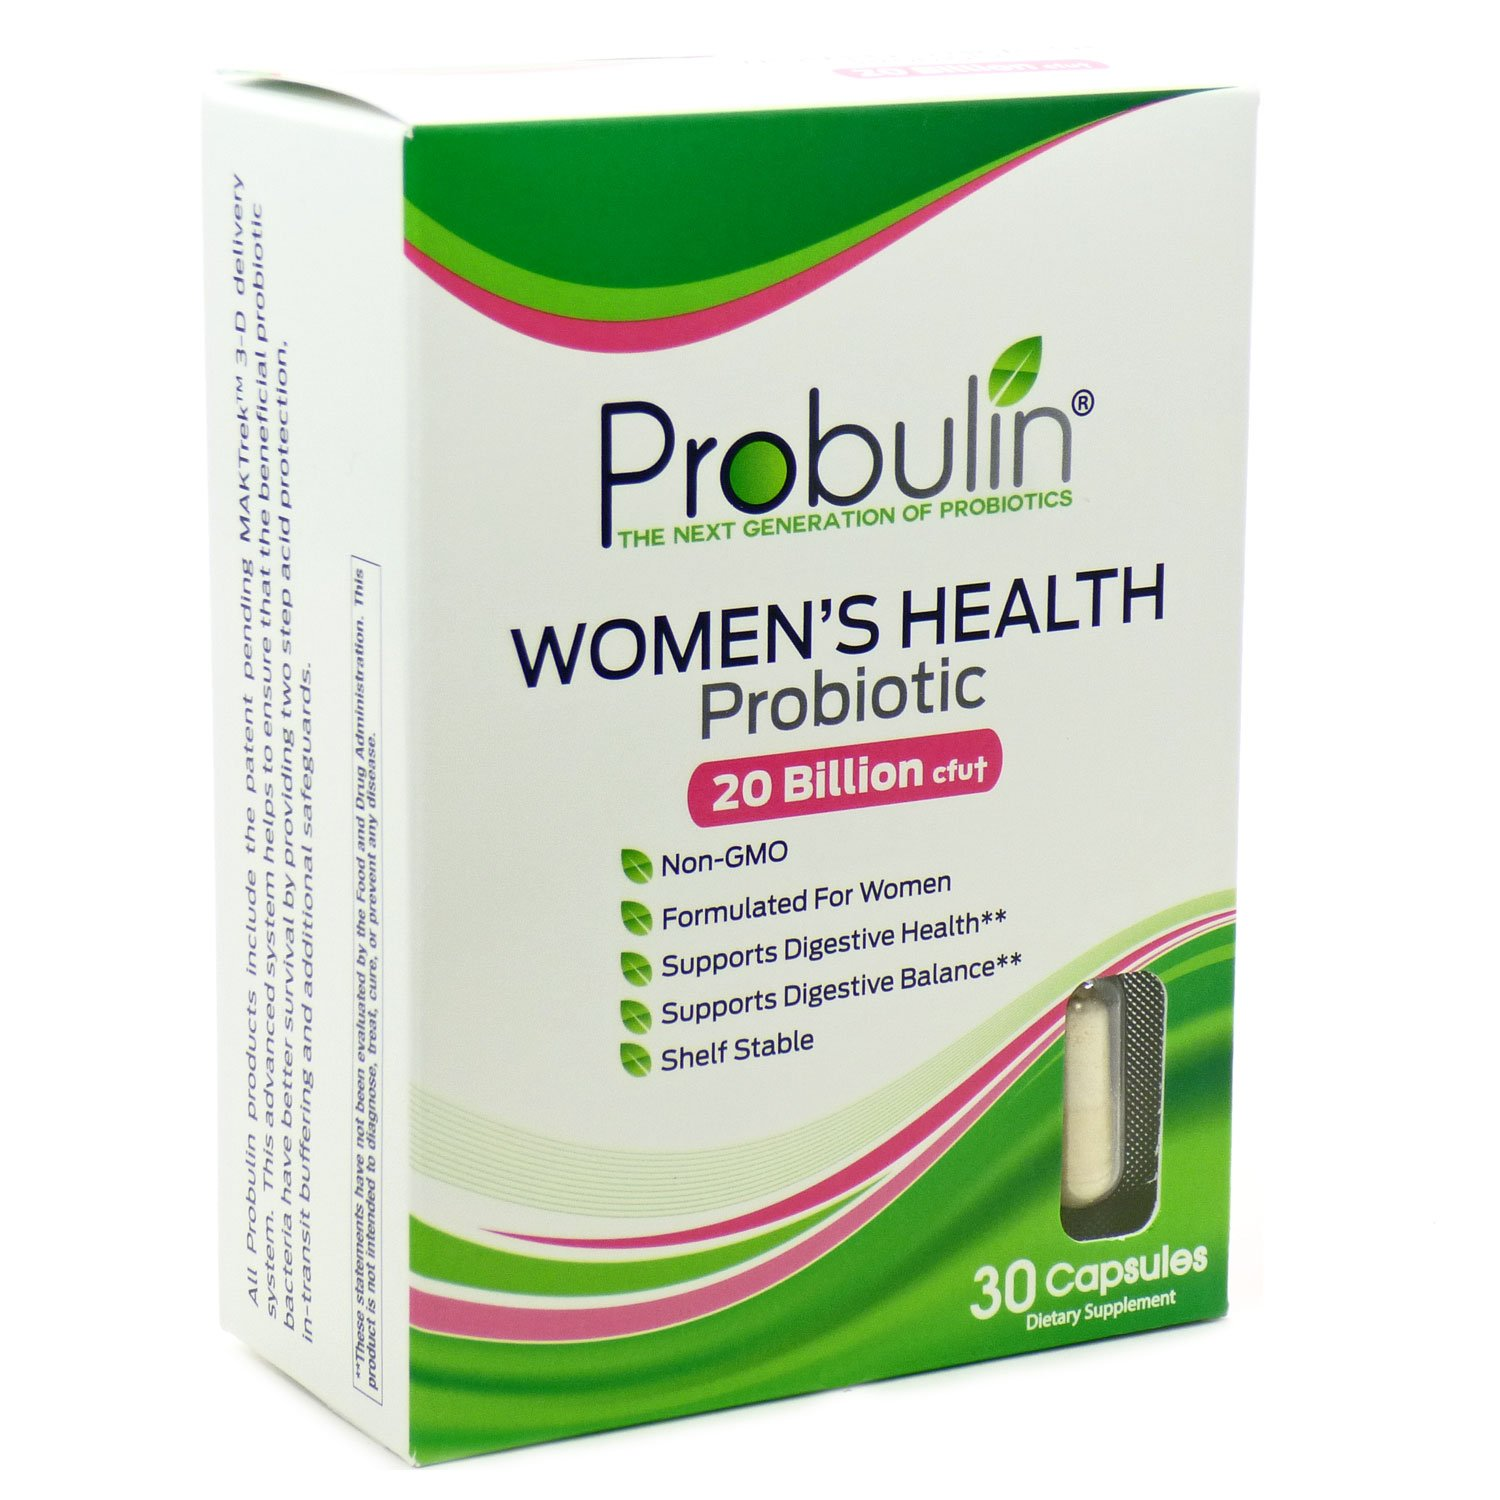 Probulin Women's Health Probiotic, 30 Capsules